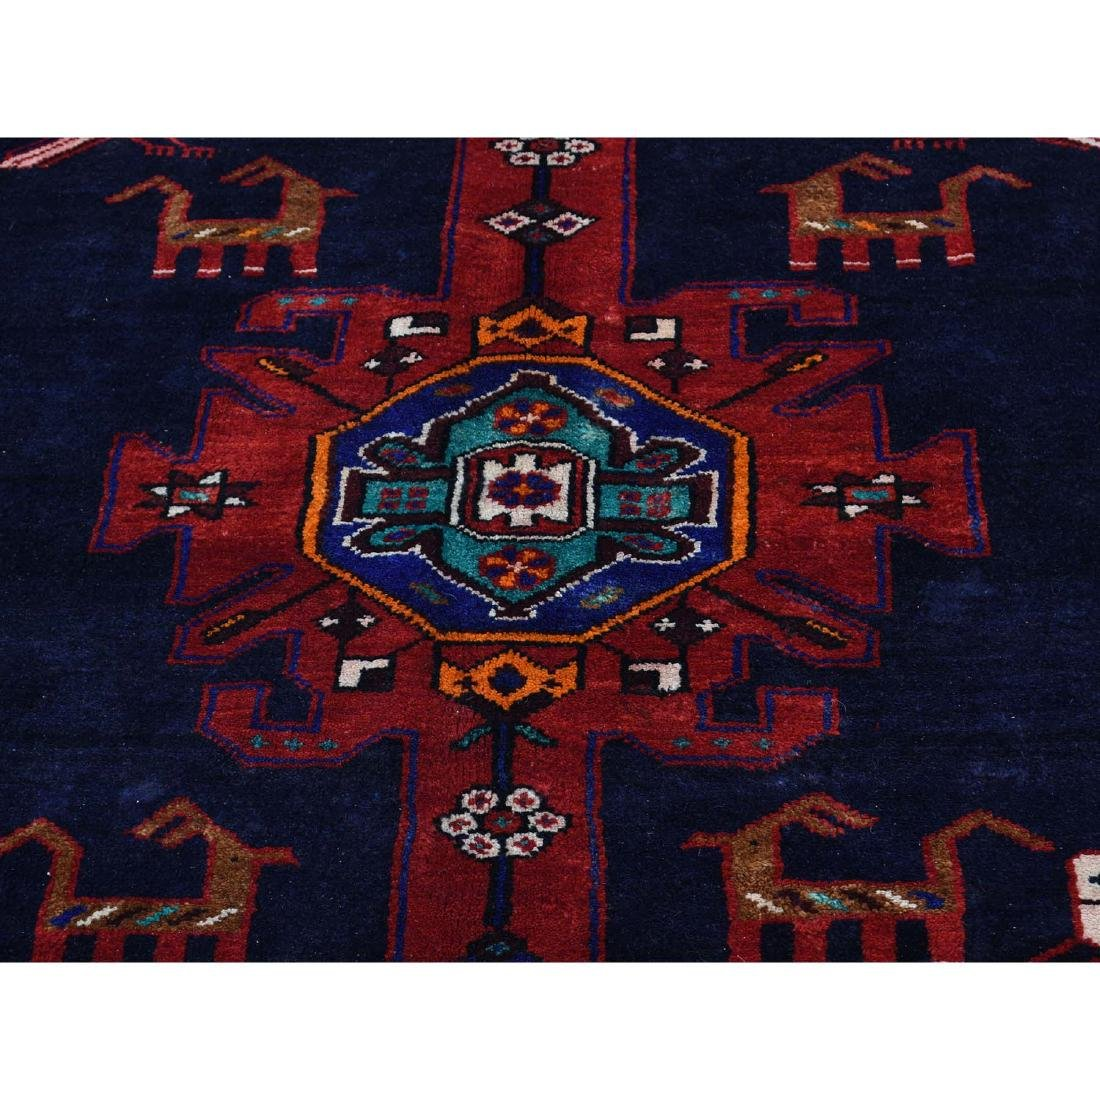 Hand Knotted Semi Antique Persian Hamadan Rug 5.1x9 - 9